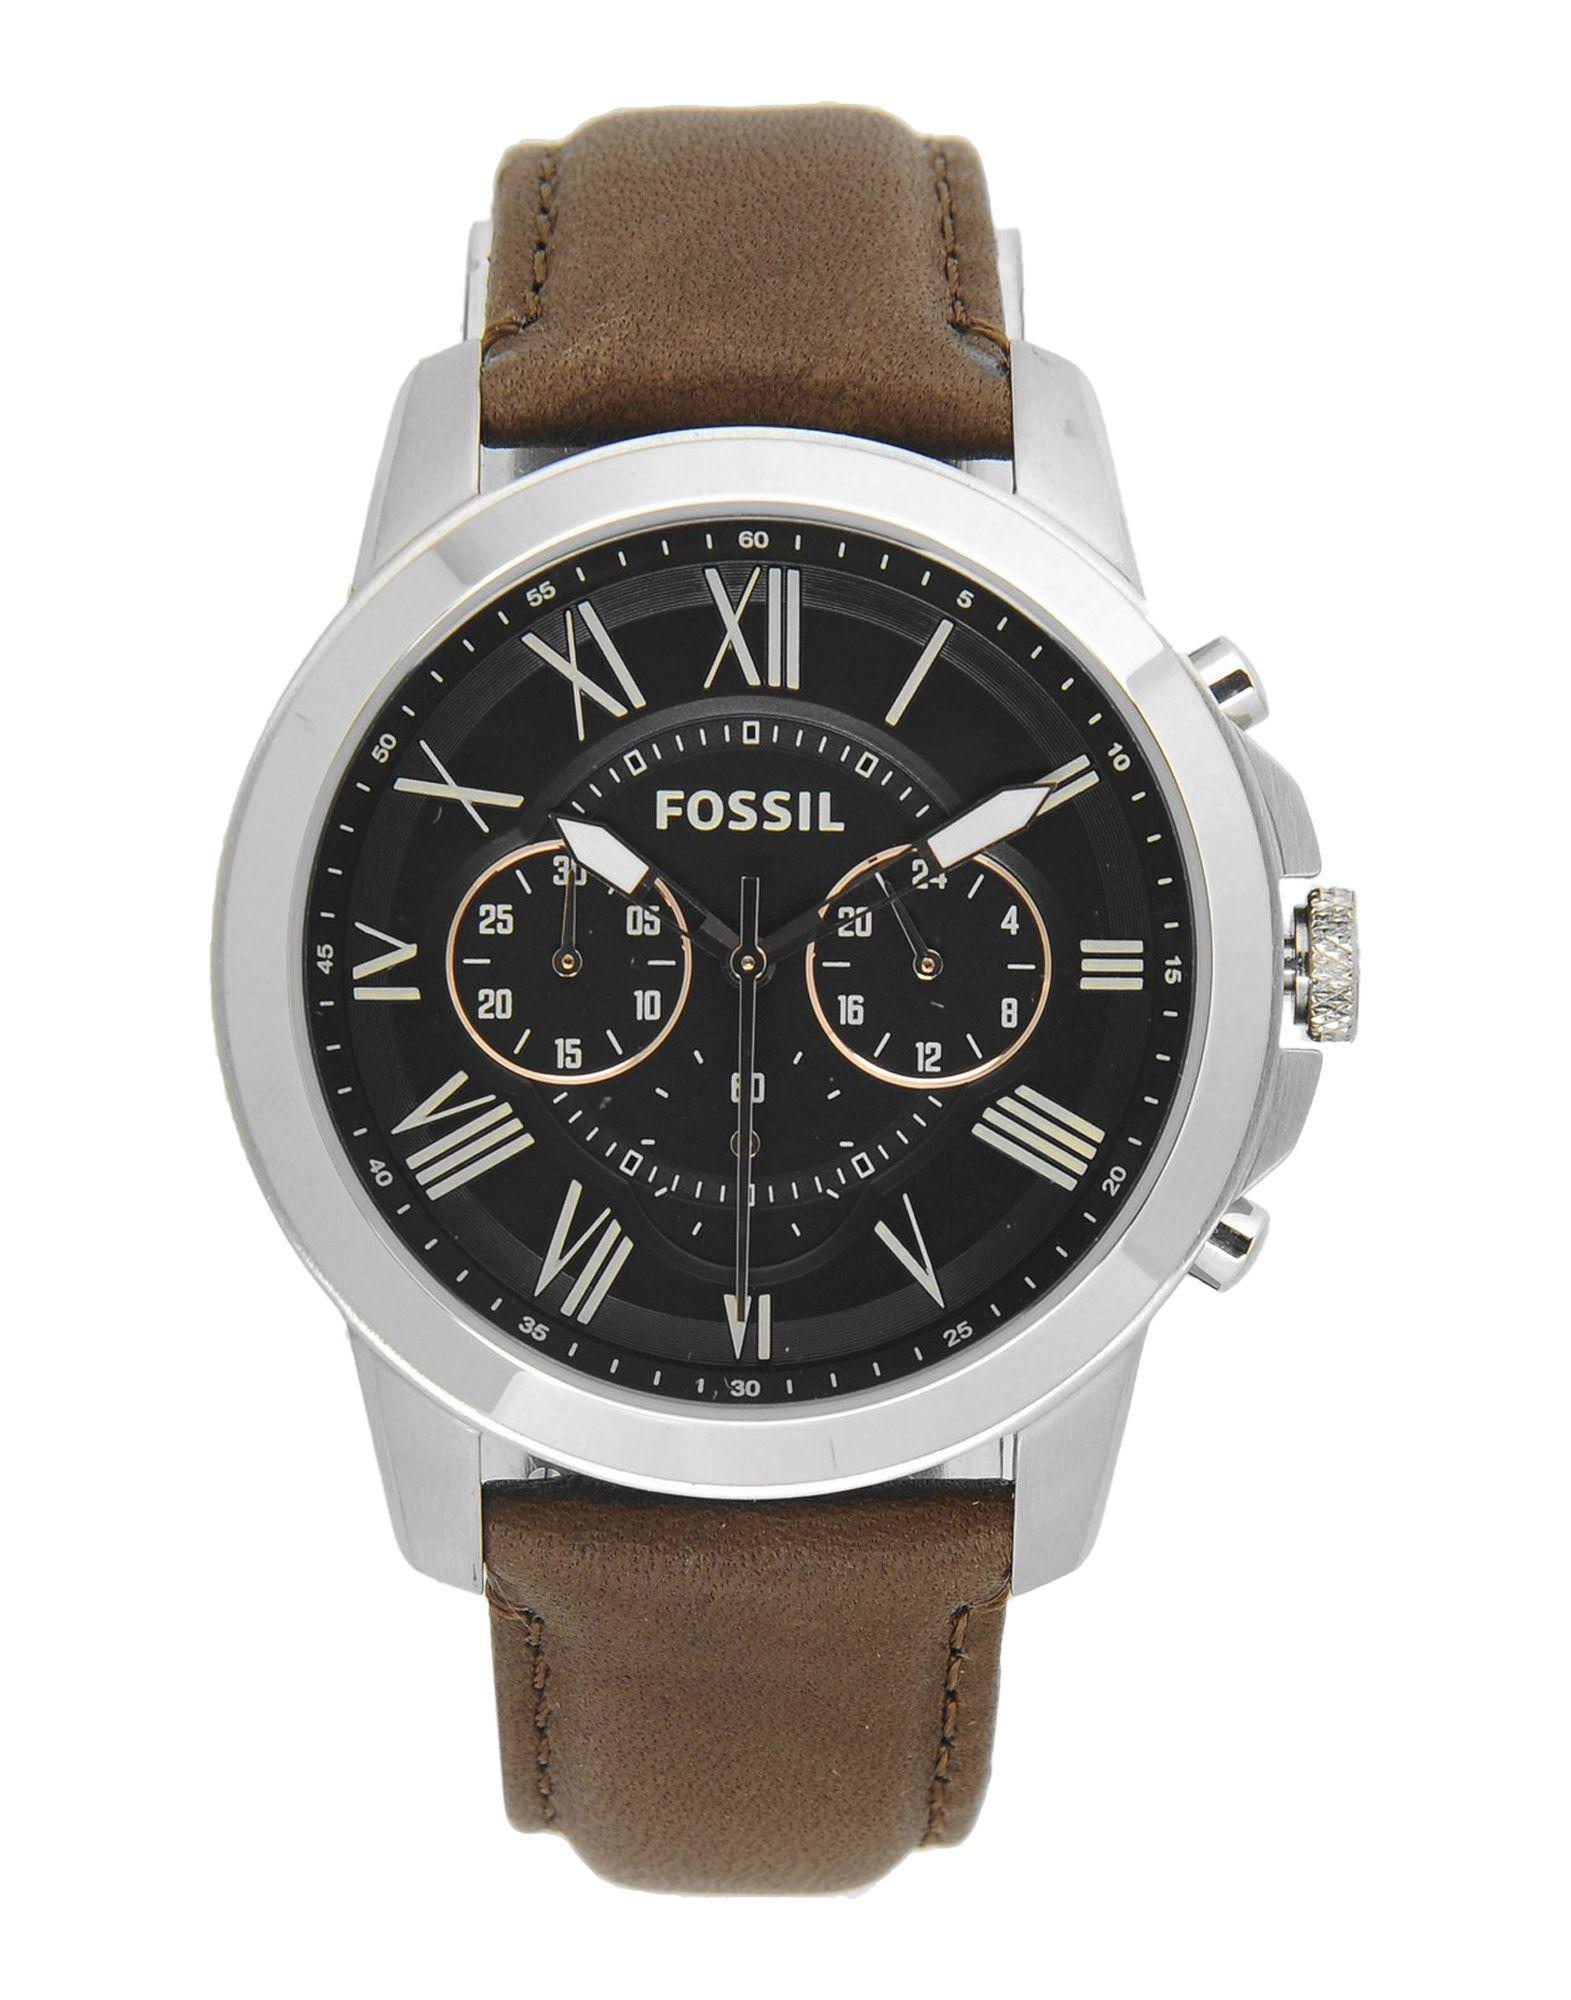 Fossil Leather Wrist Watch in Black for Men - Lyst